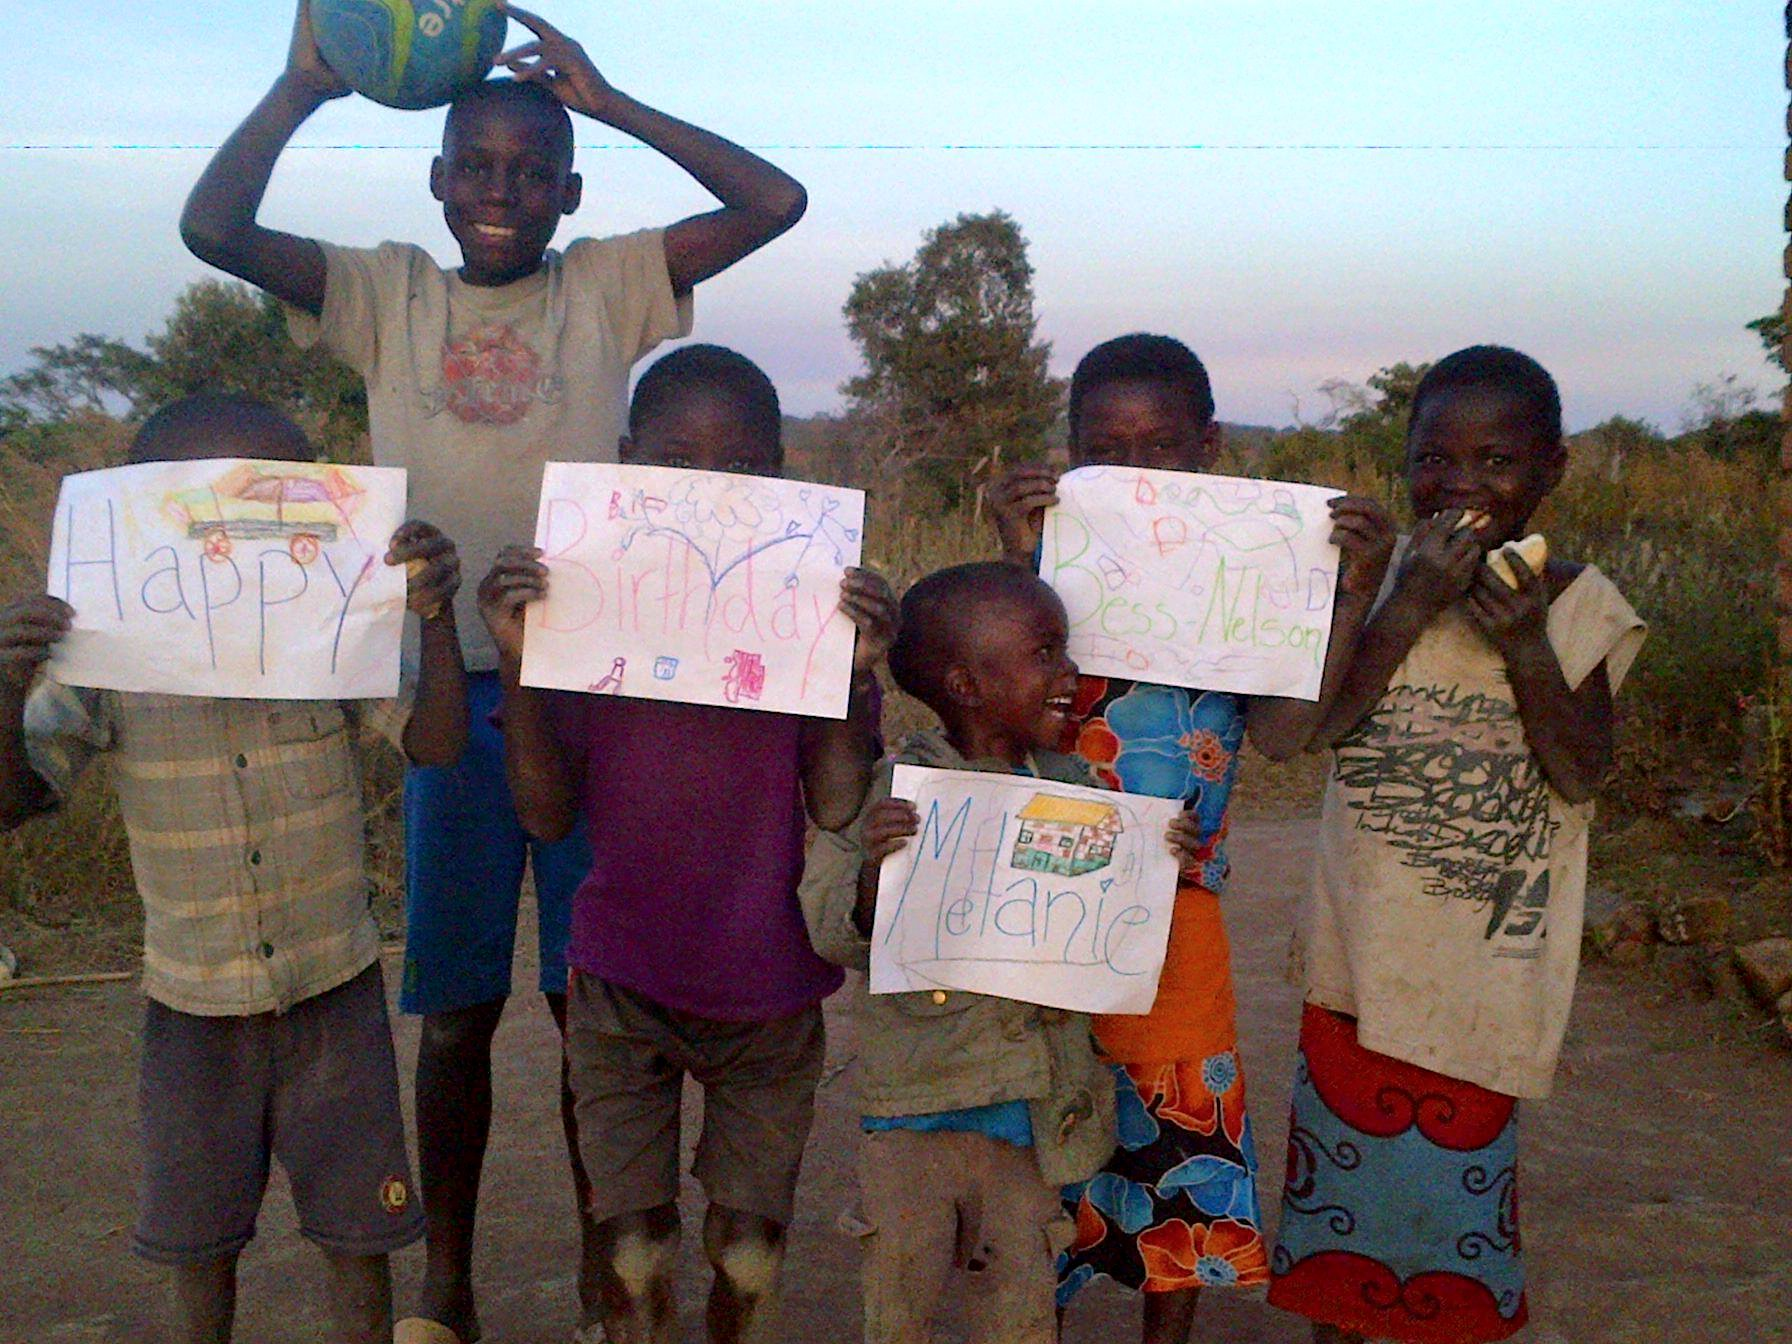 On my birthday last year, they made these little signs to tell me Happy Birthday and then Kate sent a video of them singing to me.  My heart exploded.  These kids, they are the future of Zambia and they deserve the best shot possible.